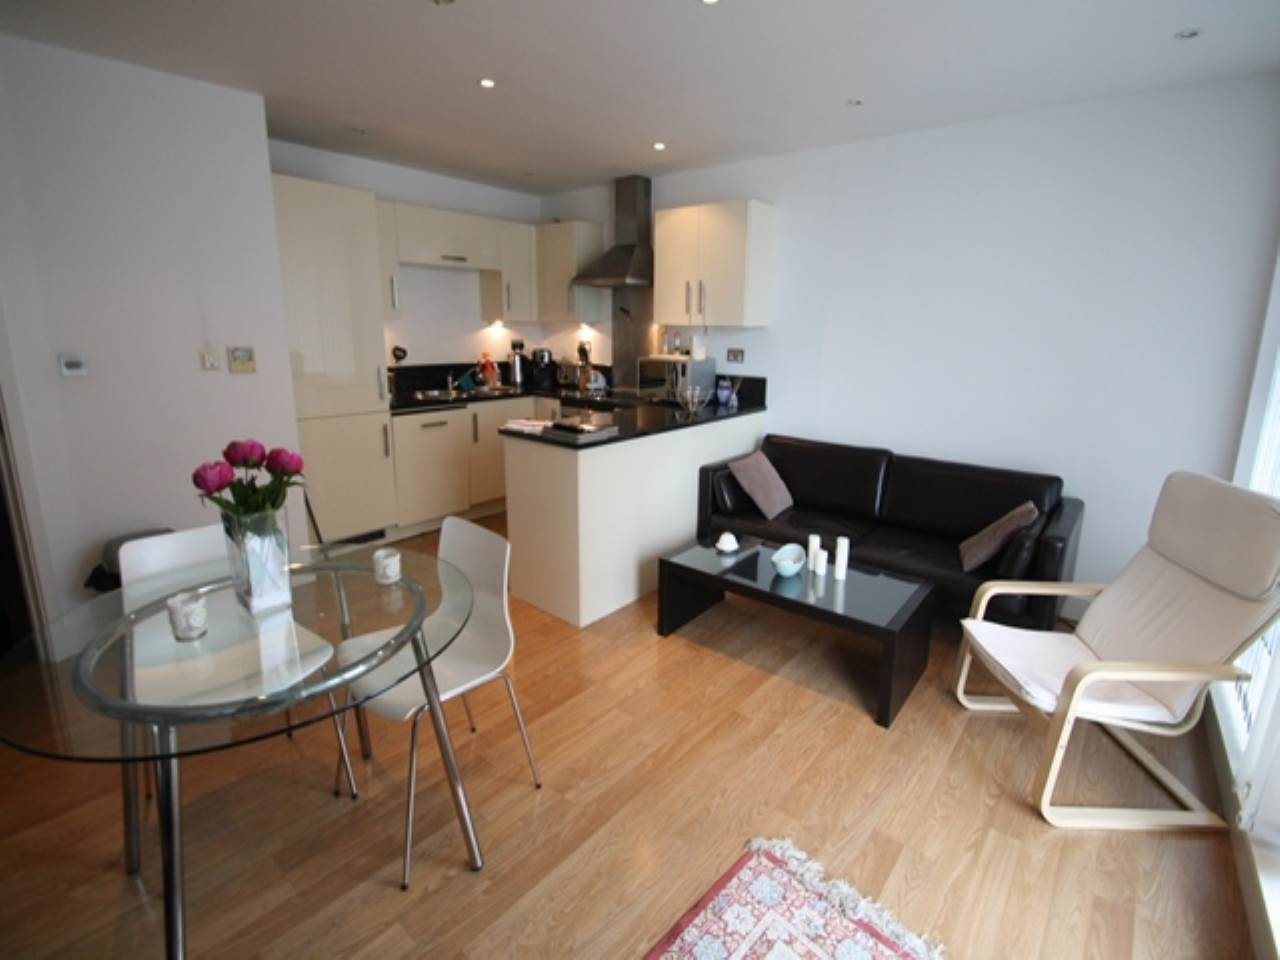 1 bed flat to rent in Docklands, E16